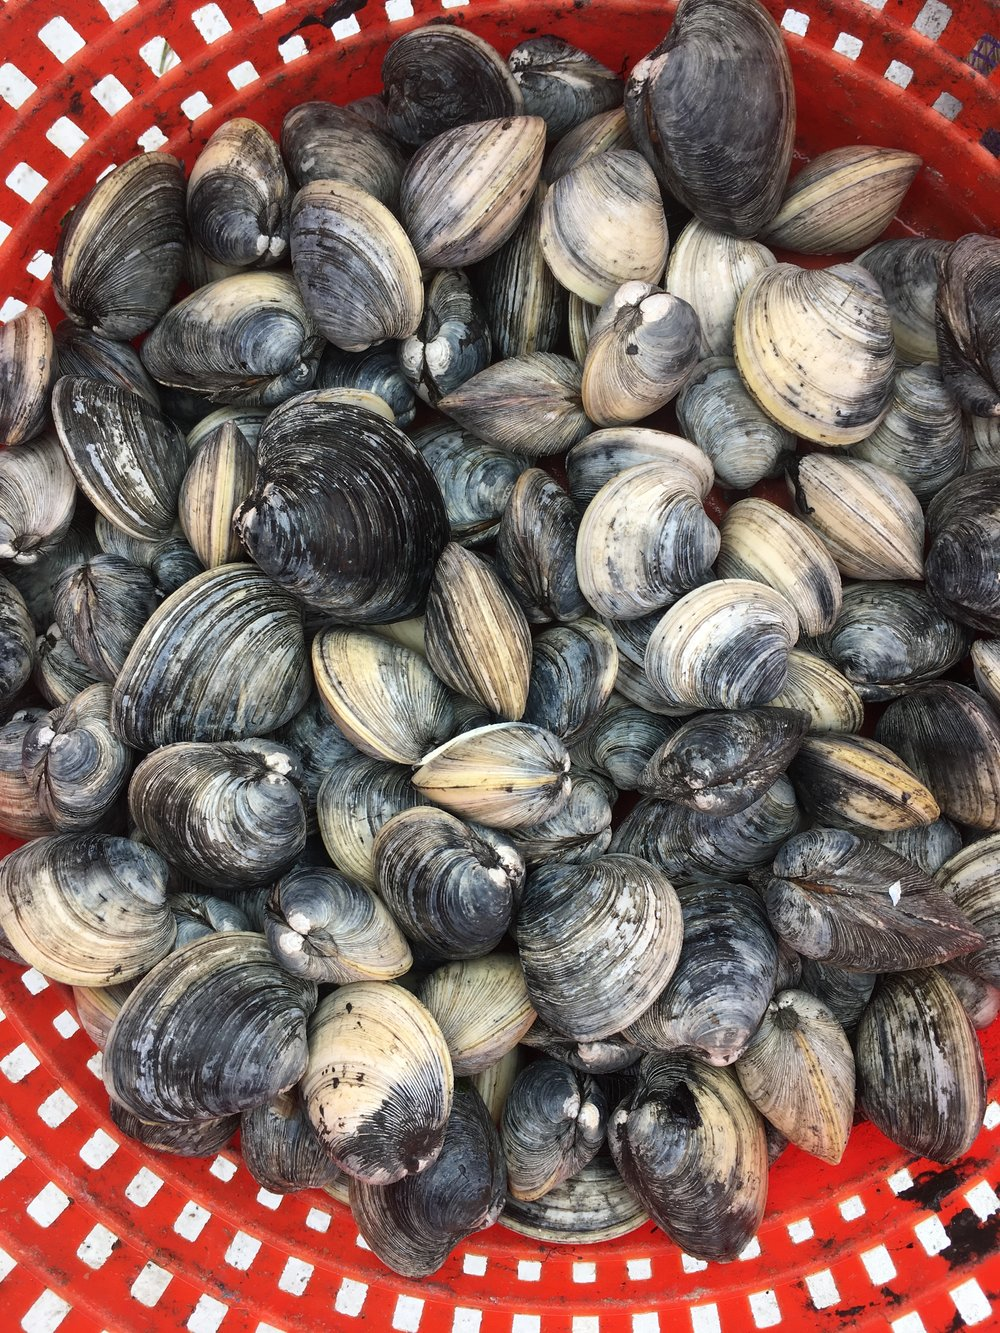 Seriously, how beautiful is this basket of clams ?! I love the deep inky blues the clams have when he first pulls them out from the mud.  I see another clammy painting in my not-too-distant future.